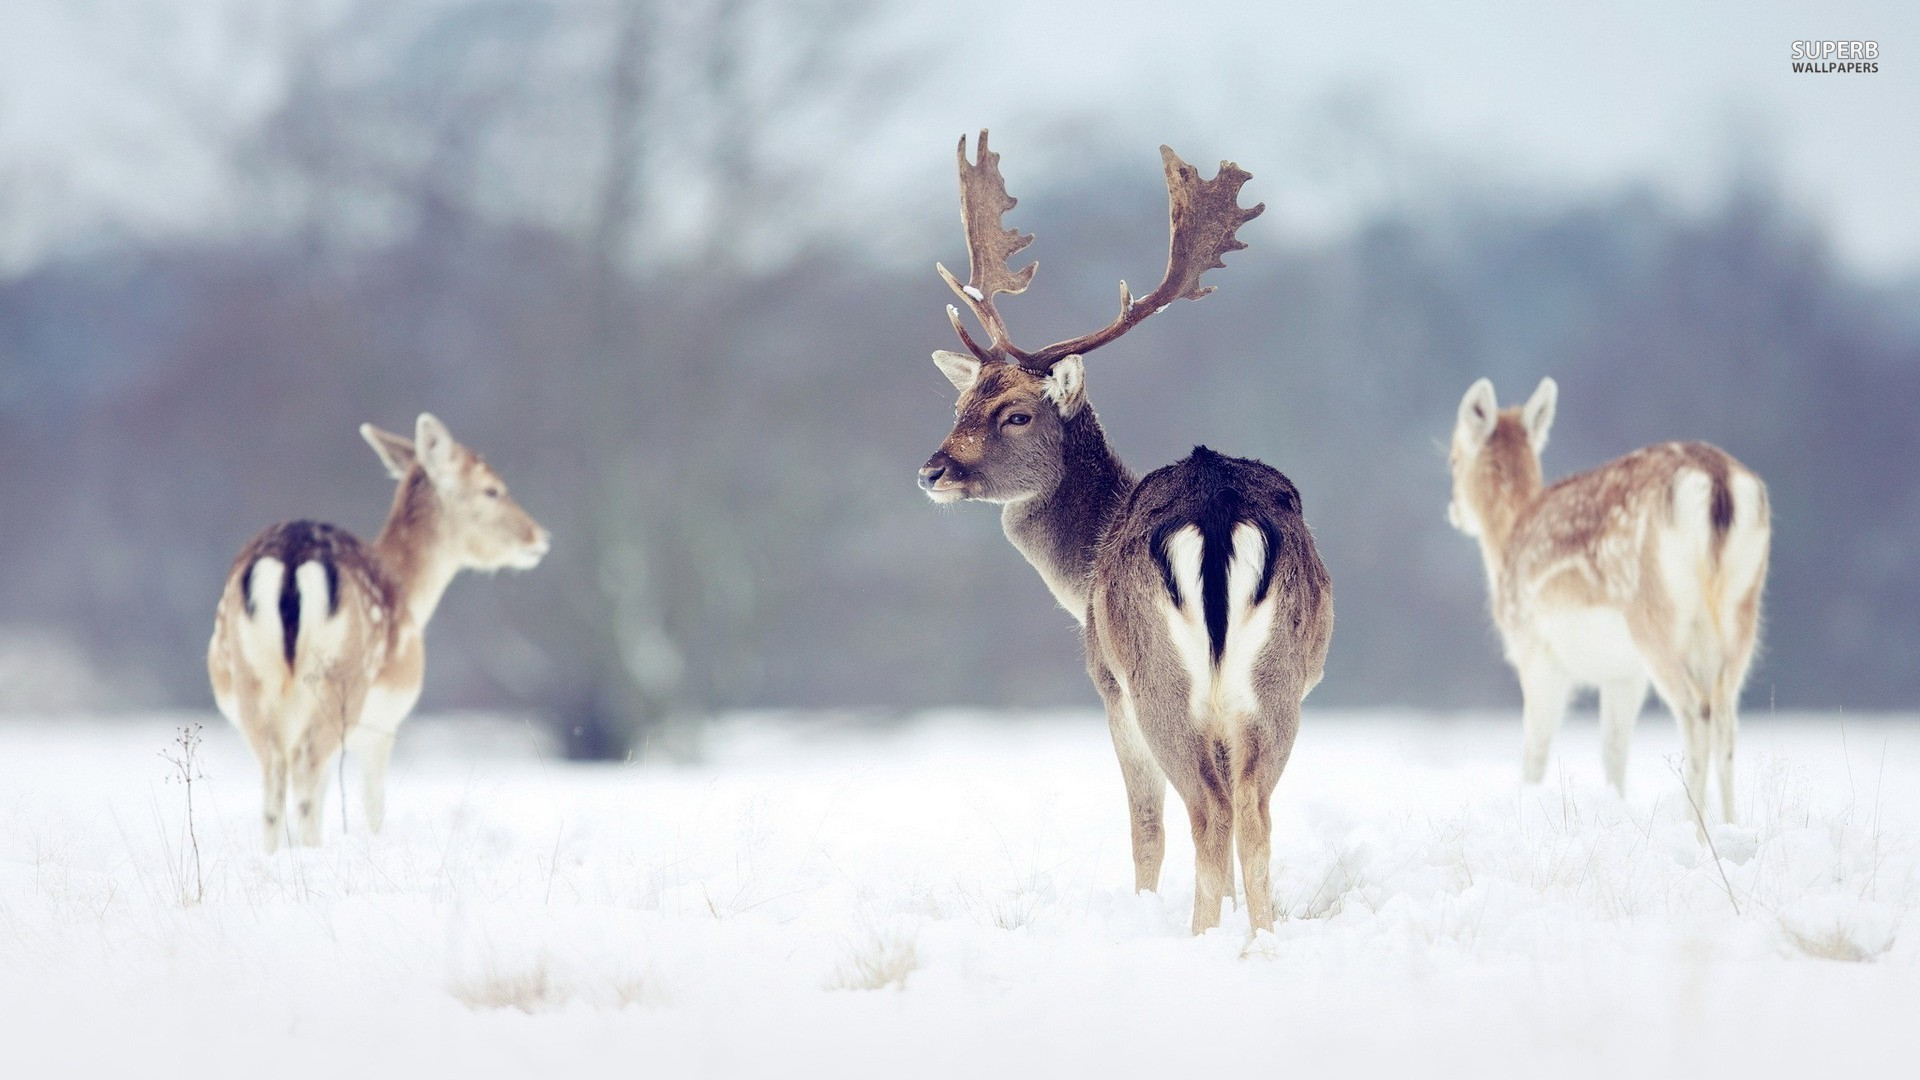 snow wallpaper deer